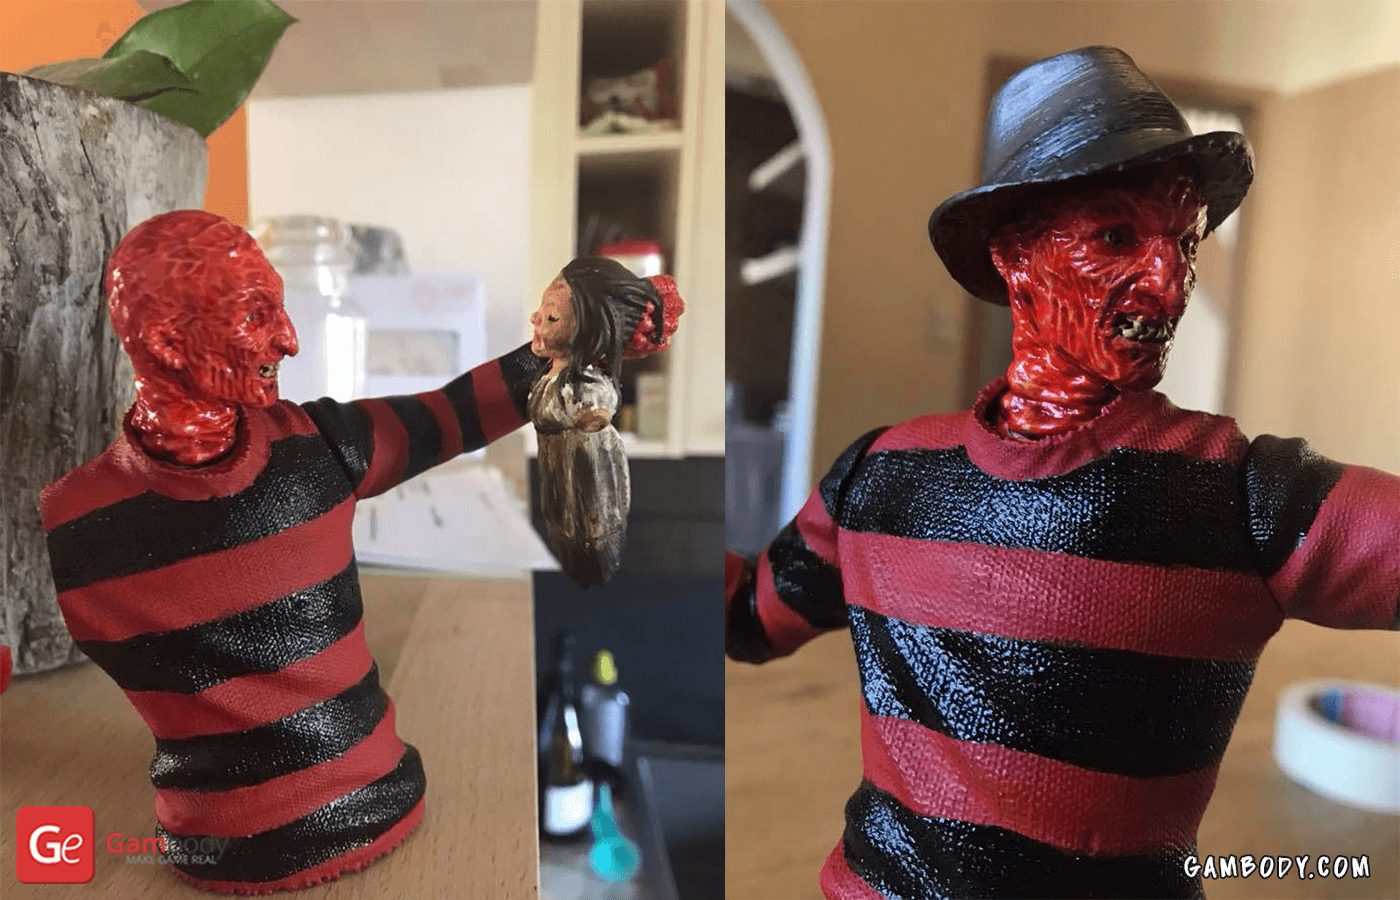 Freddy Krueger 3D printing Figure Photo 4